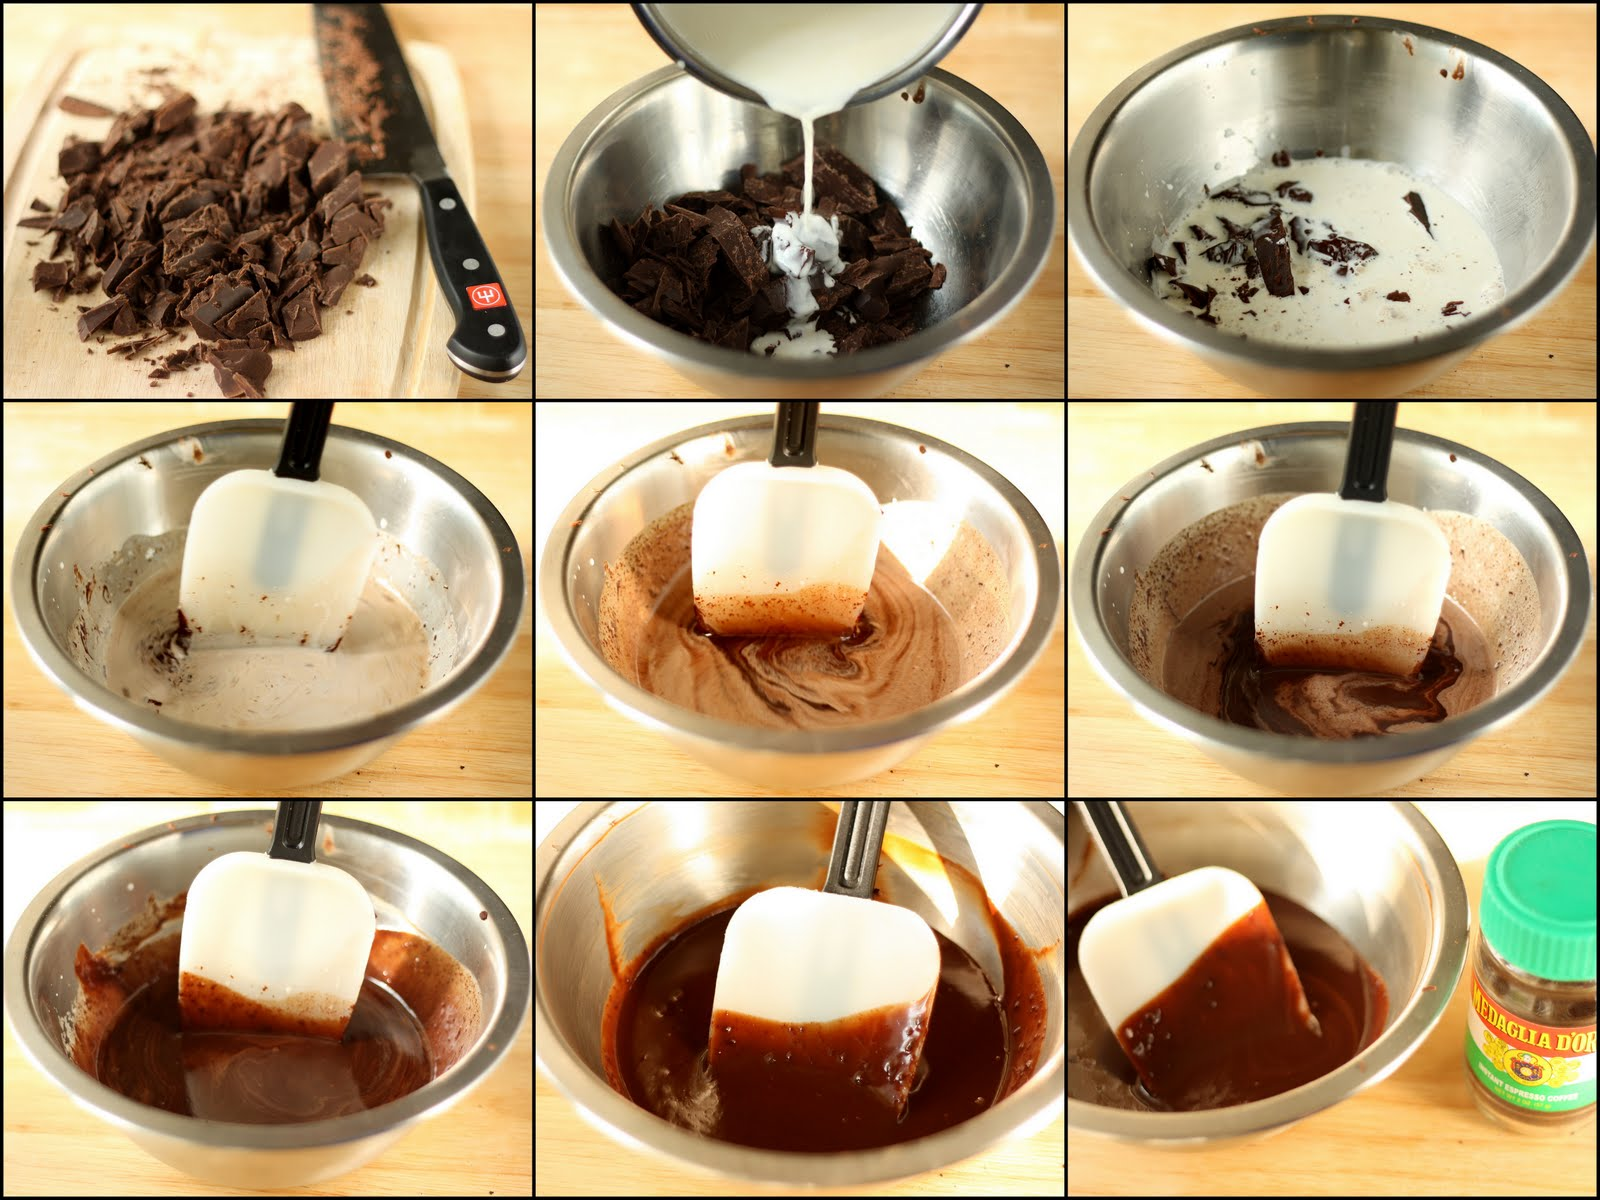 procedure of making a cake what sara sears blog basic cake making step by step about food cake recipes don t have to be fussy and difficult the general procedure for baking a cake epicurious